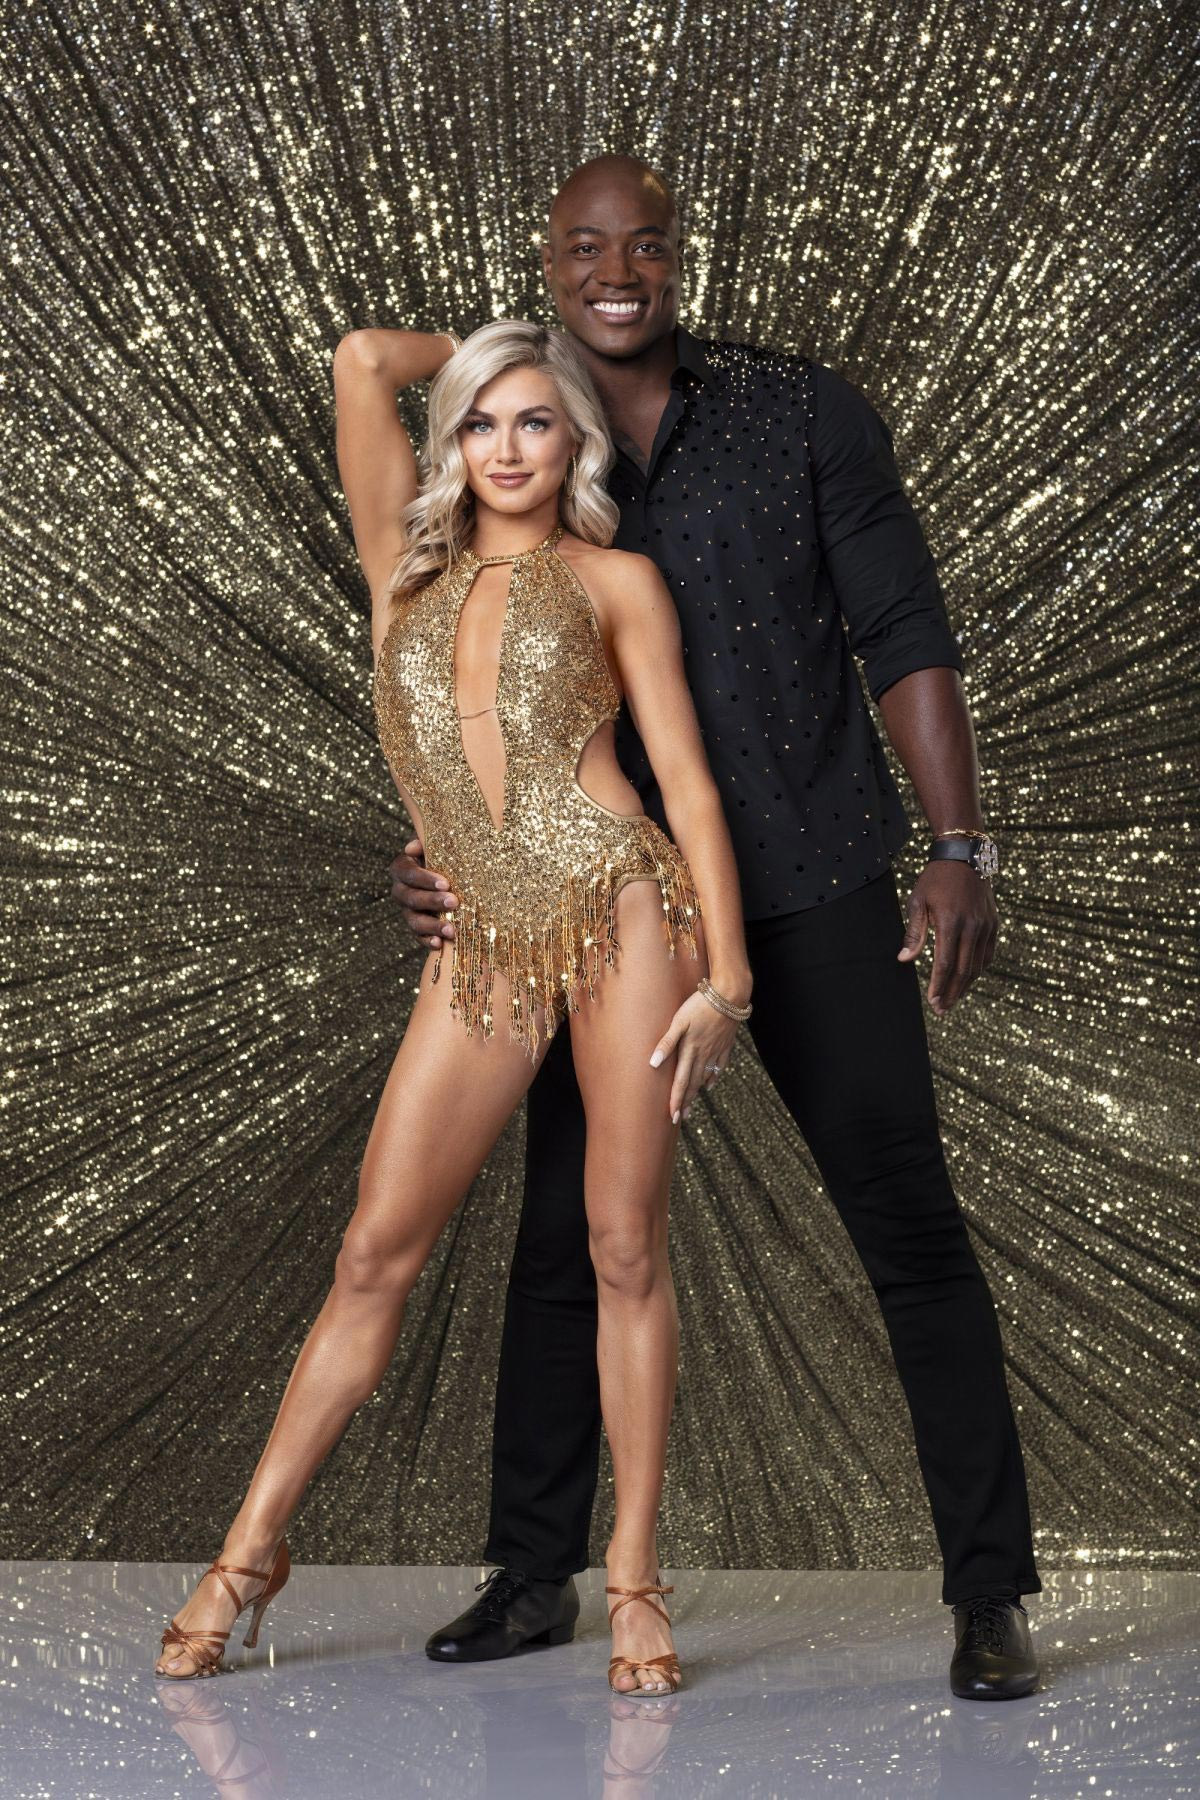 Lindsay Arnold at Dancing With the Stars, Season 27 Promos 2018/09/16 1